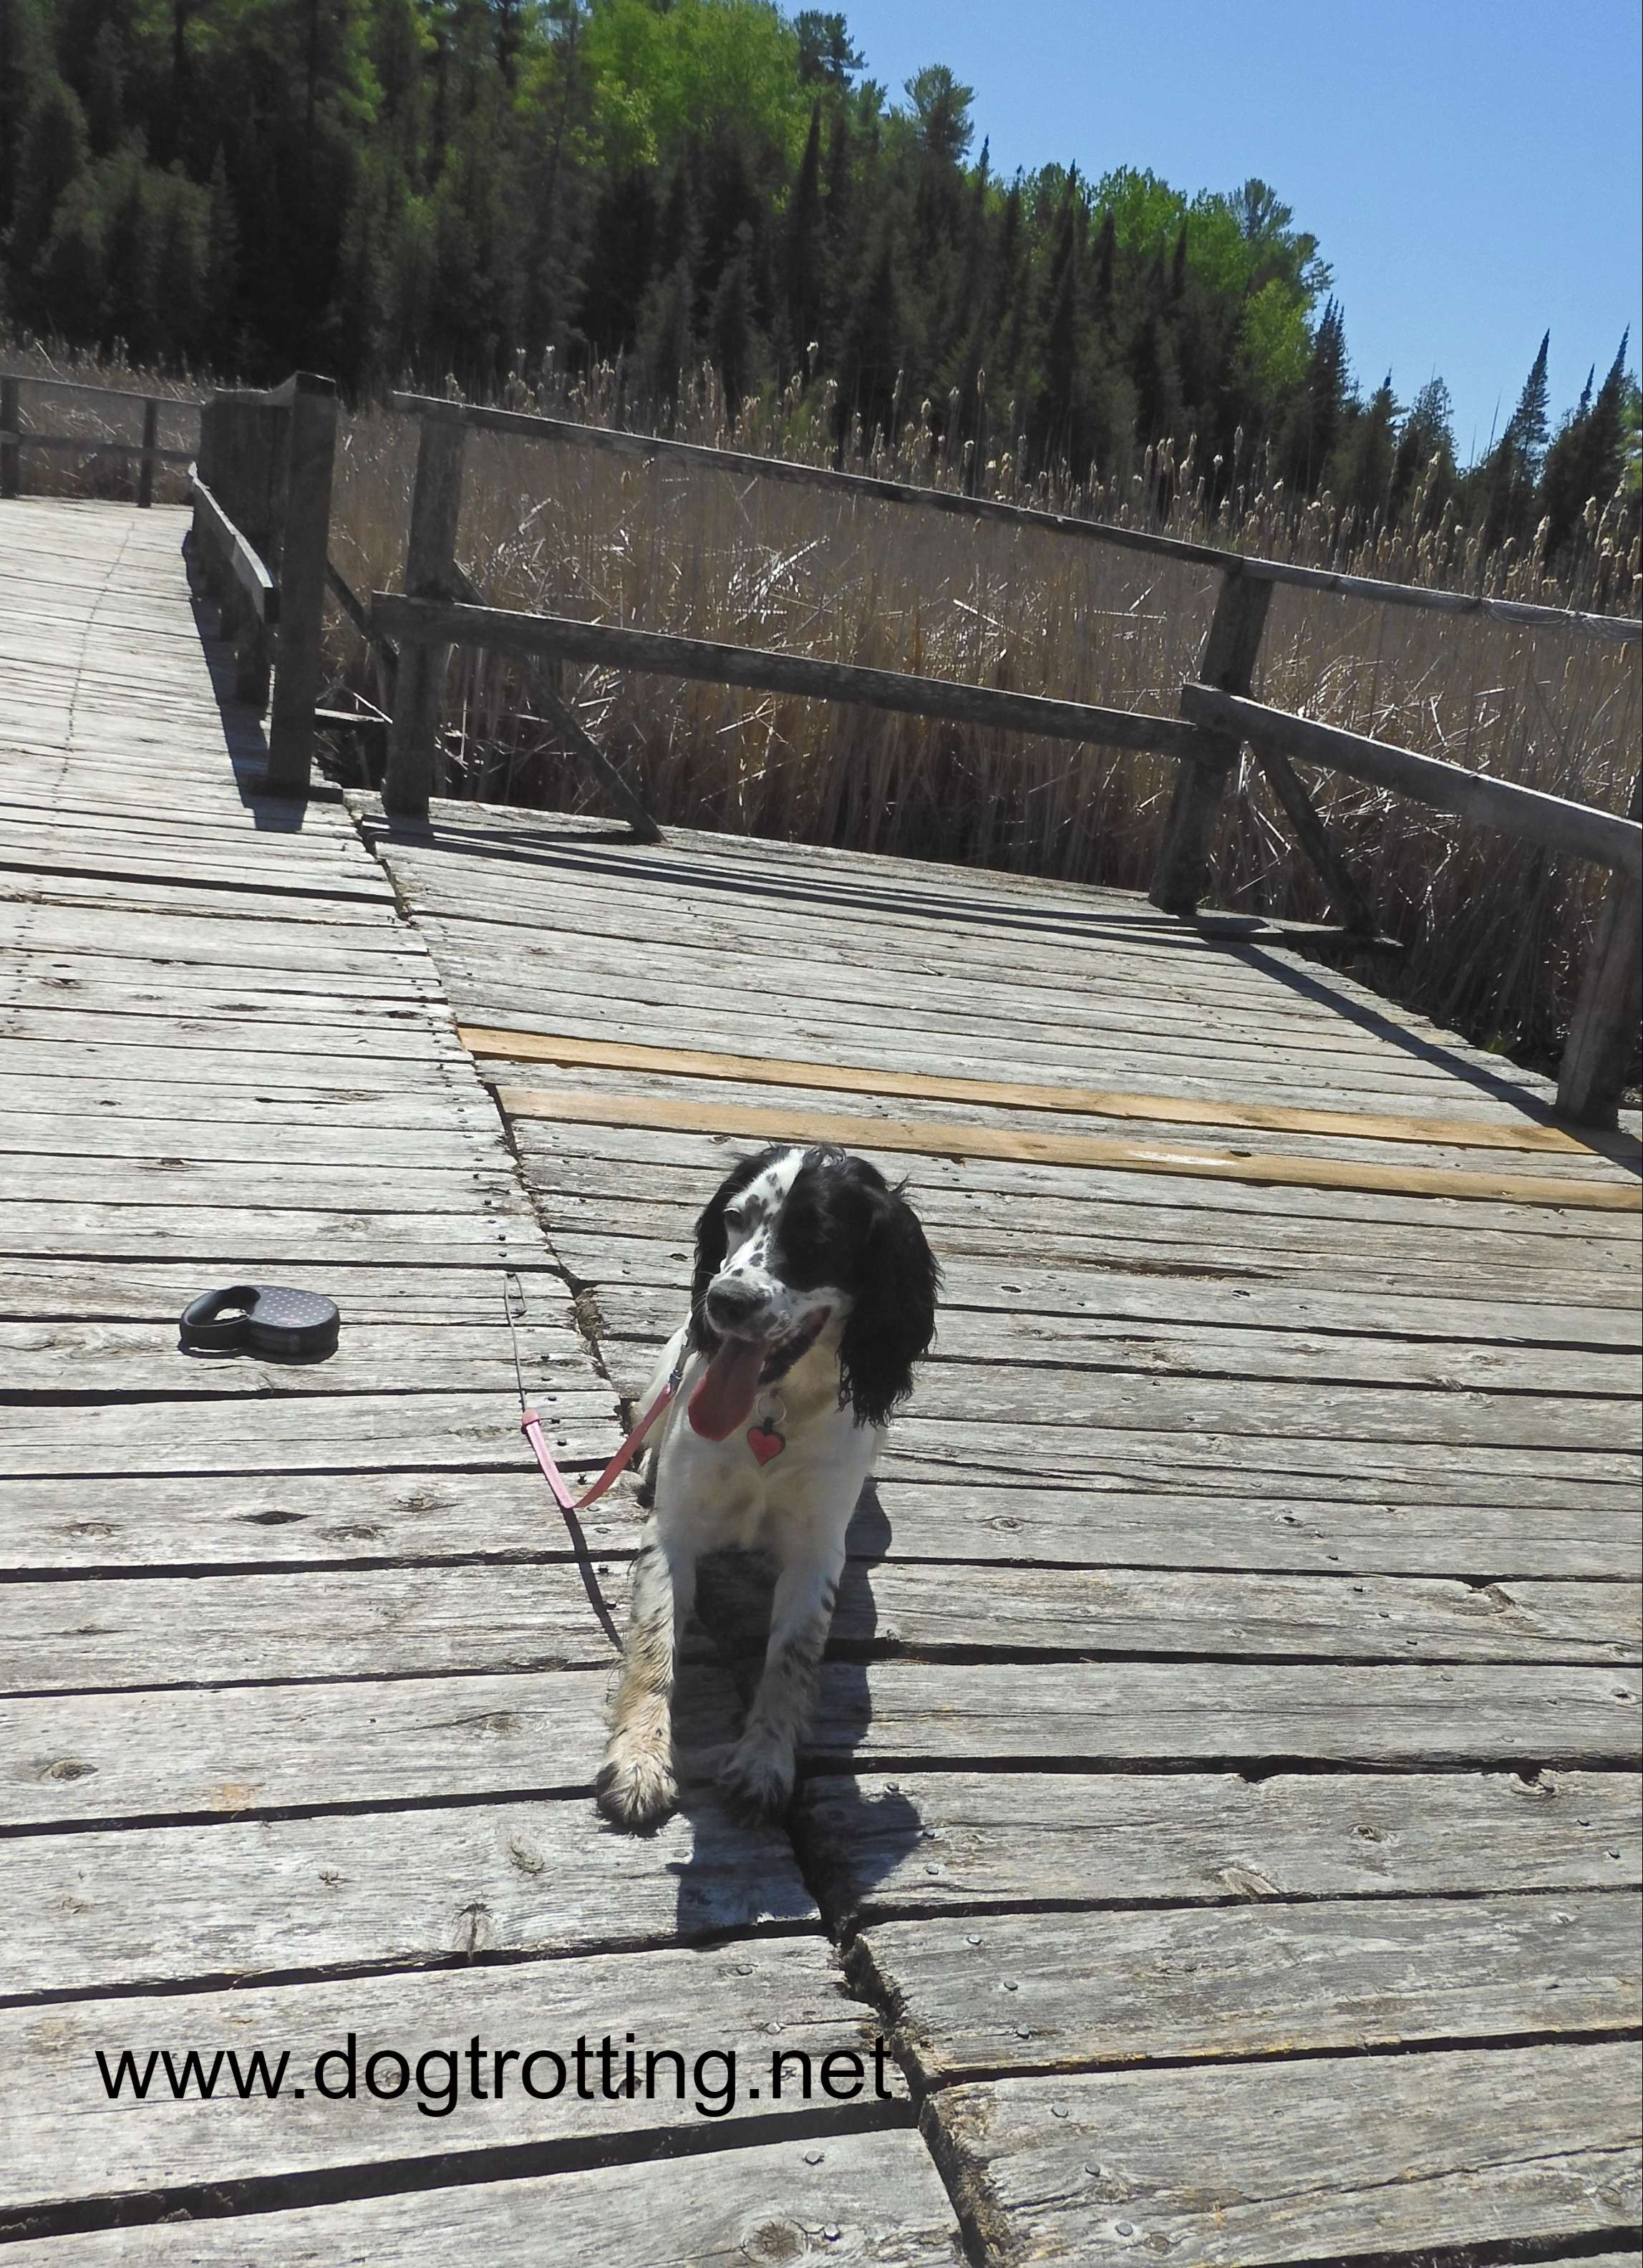 black and white dog sitting on board walk in marshlands